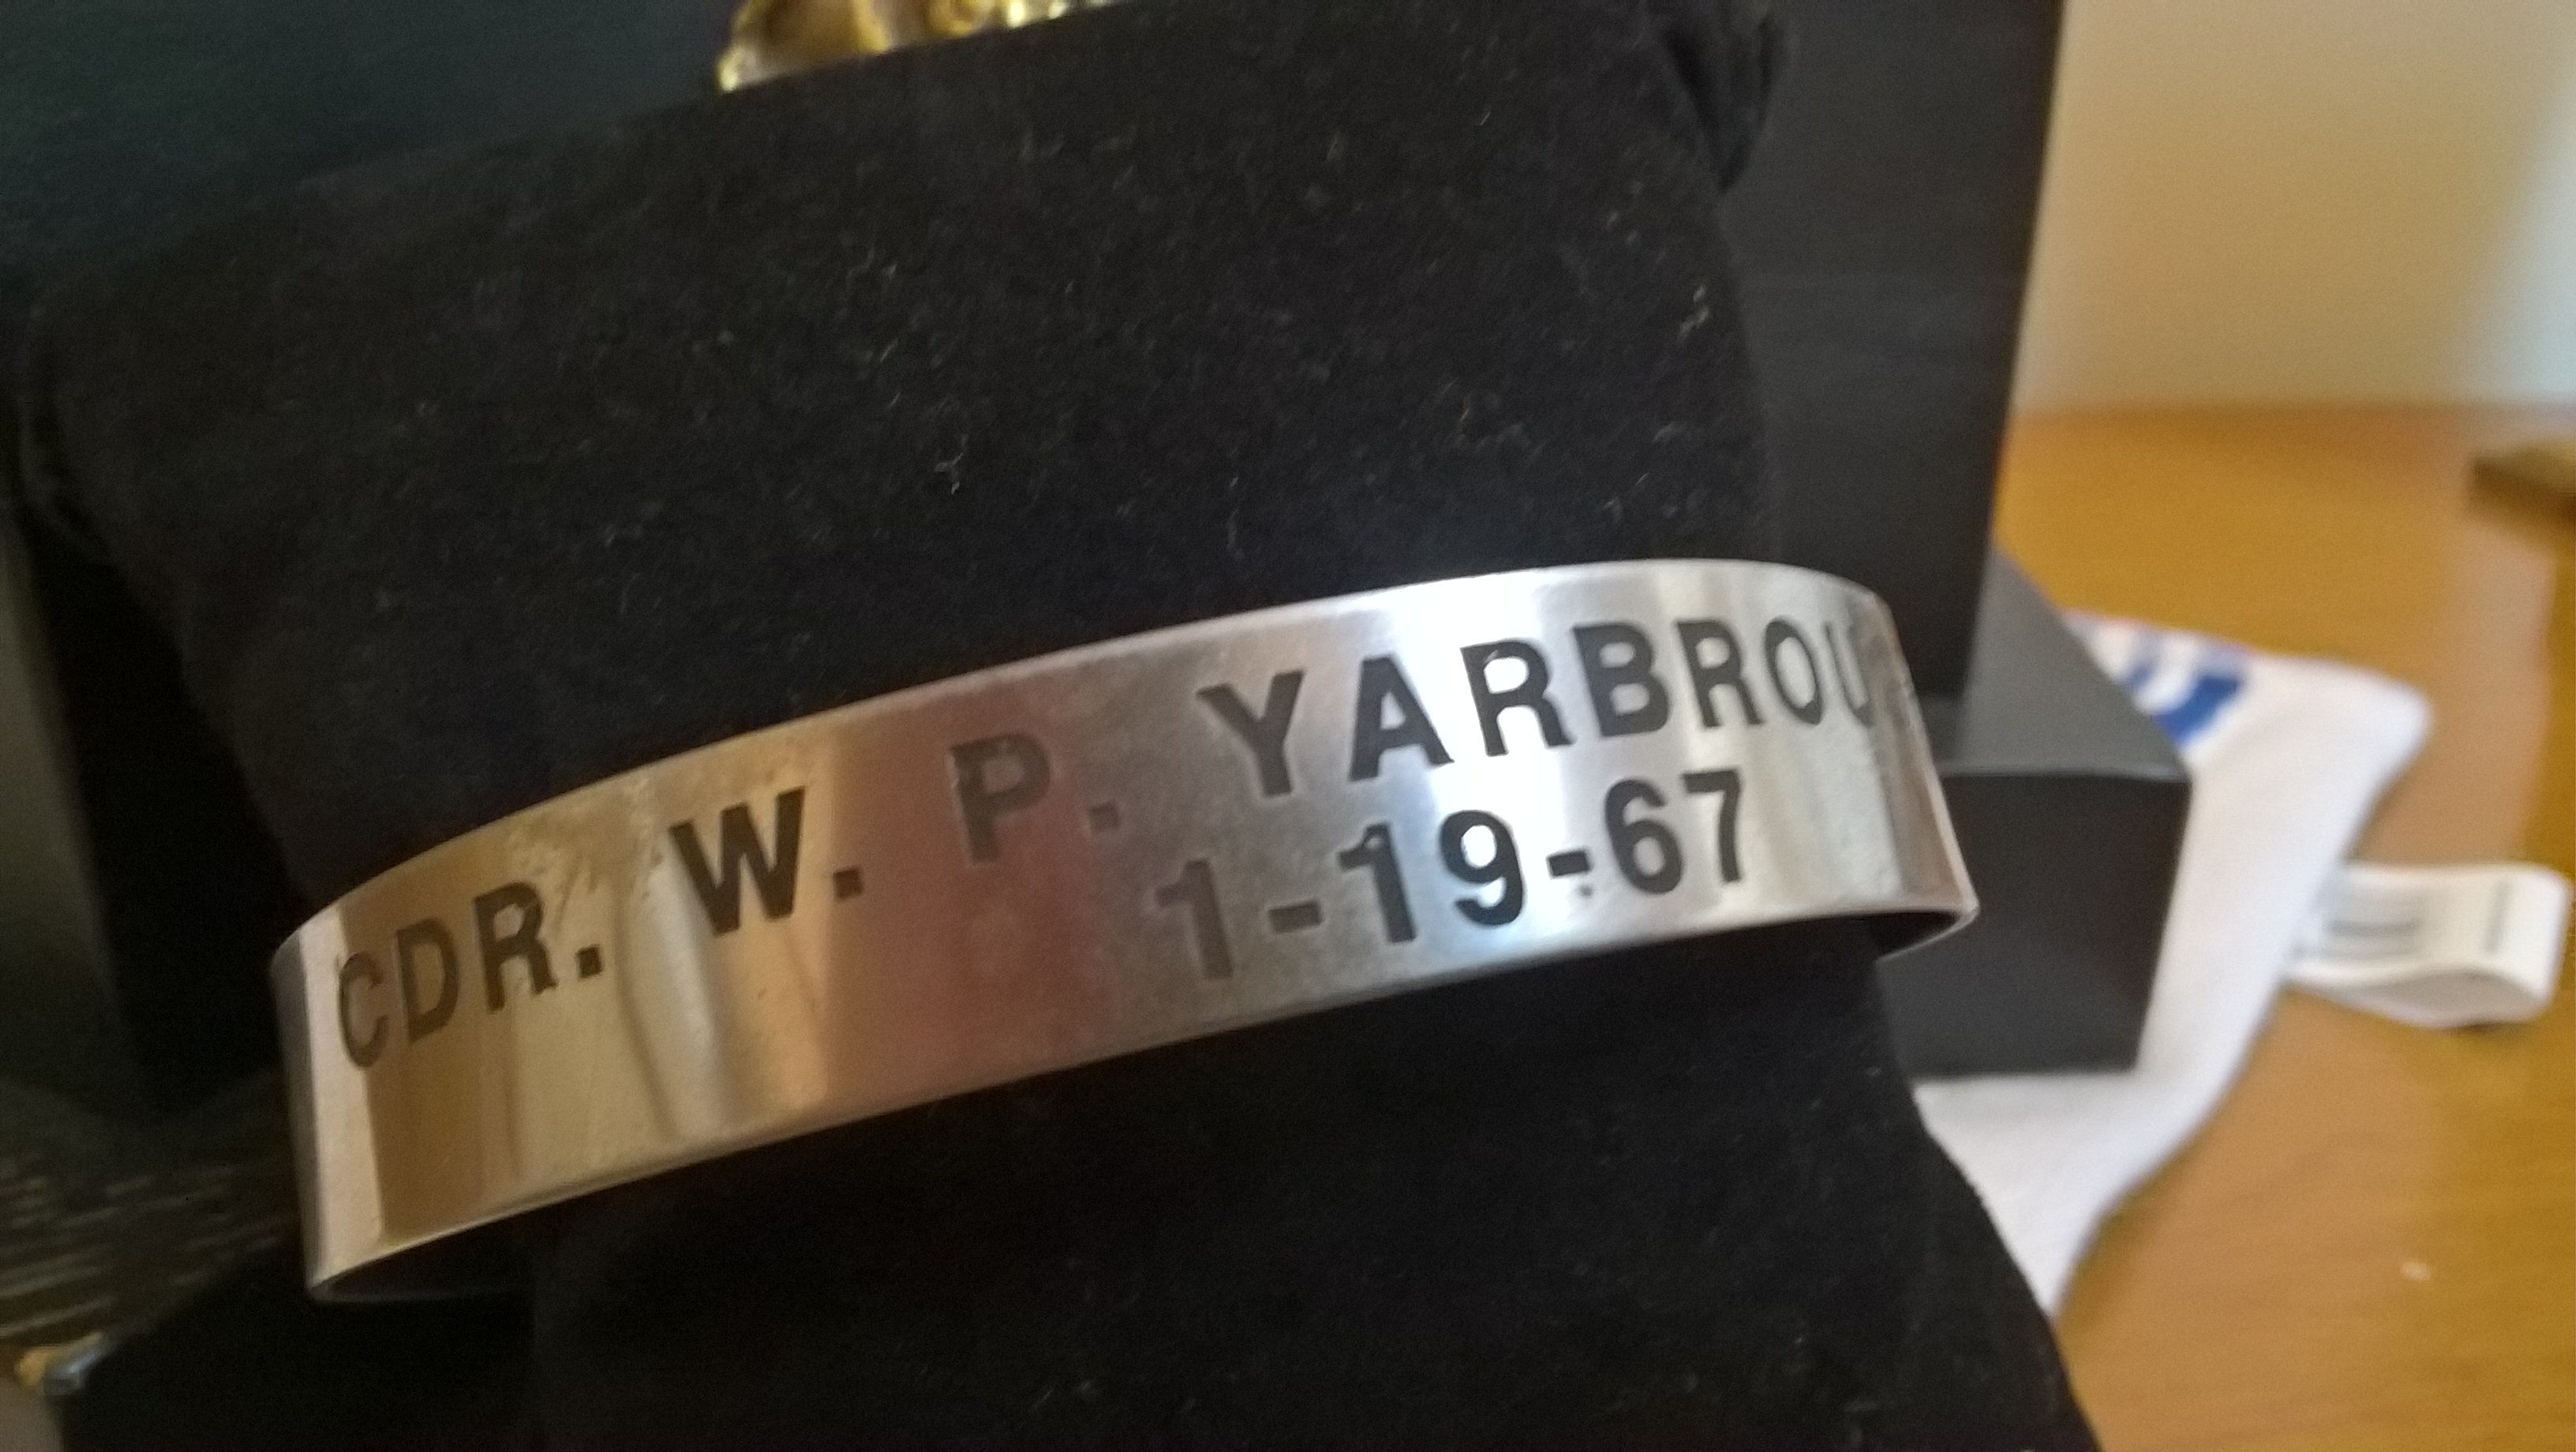 CDR. W.P. Yarbrough Jr.1/19/67